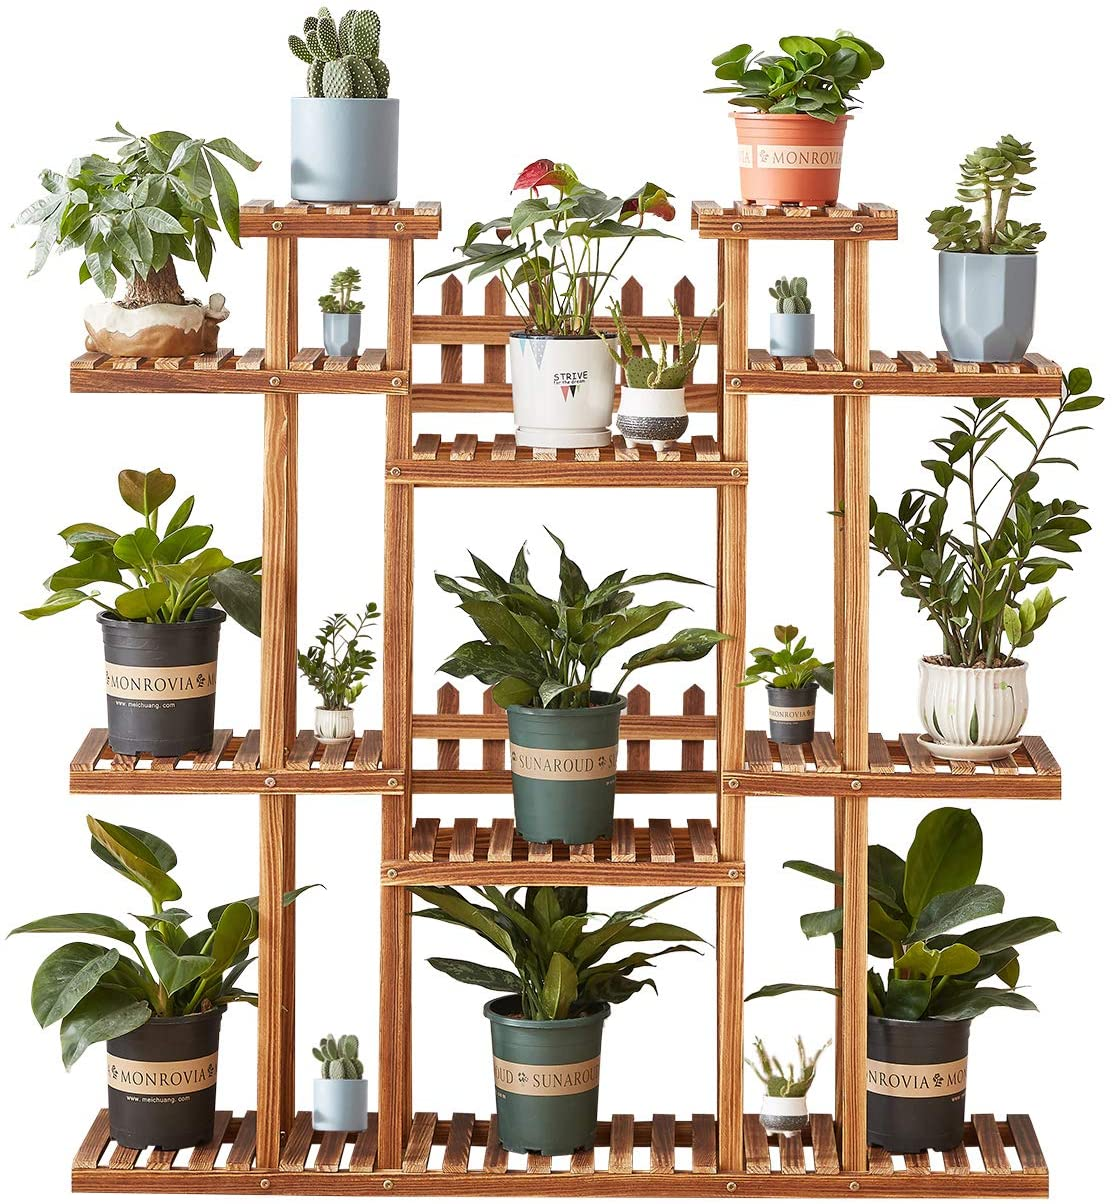 Homchwell 16 Tier Wooden Plant Stand for Indoor & Outdoor,Tiered Plant  Ladder, 16.16 inch Height,Stylish Plant Shelf for Living Room, Patio,  Garden, ...